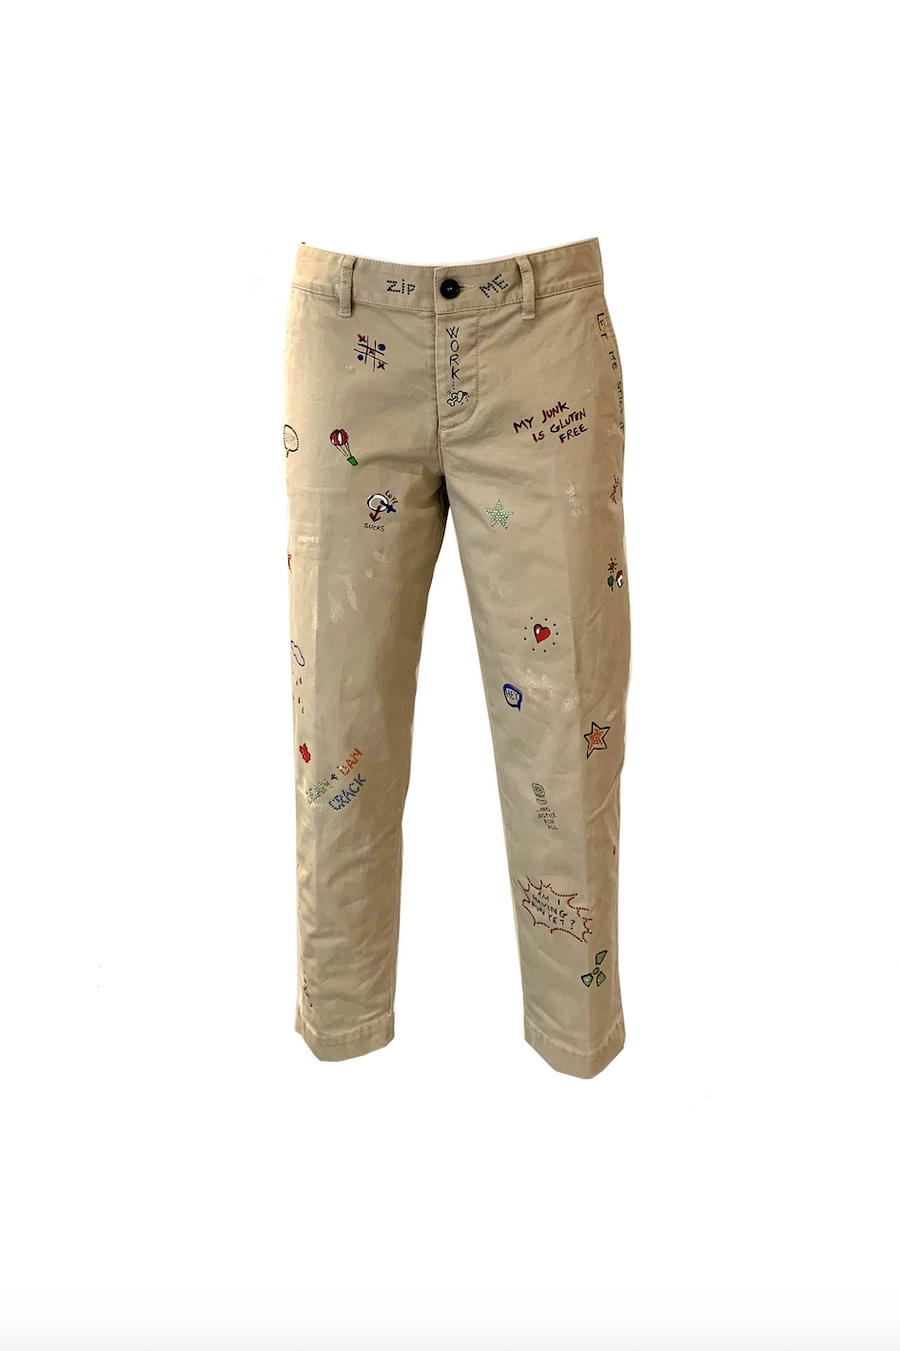 Hockney Fit Pants with Embellishments